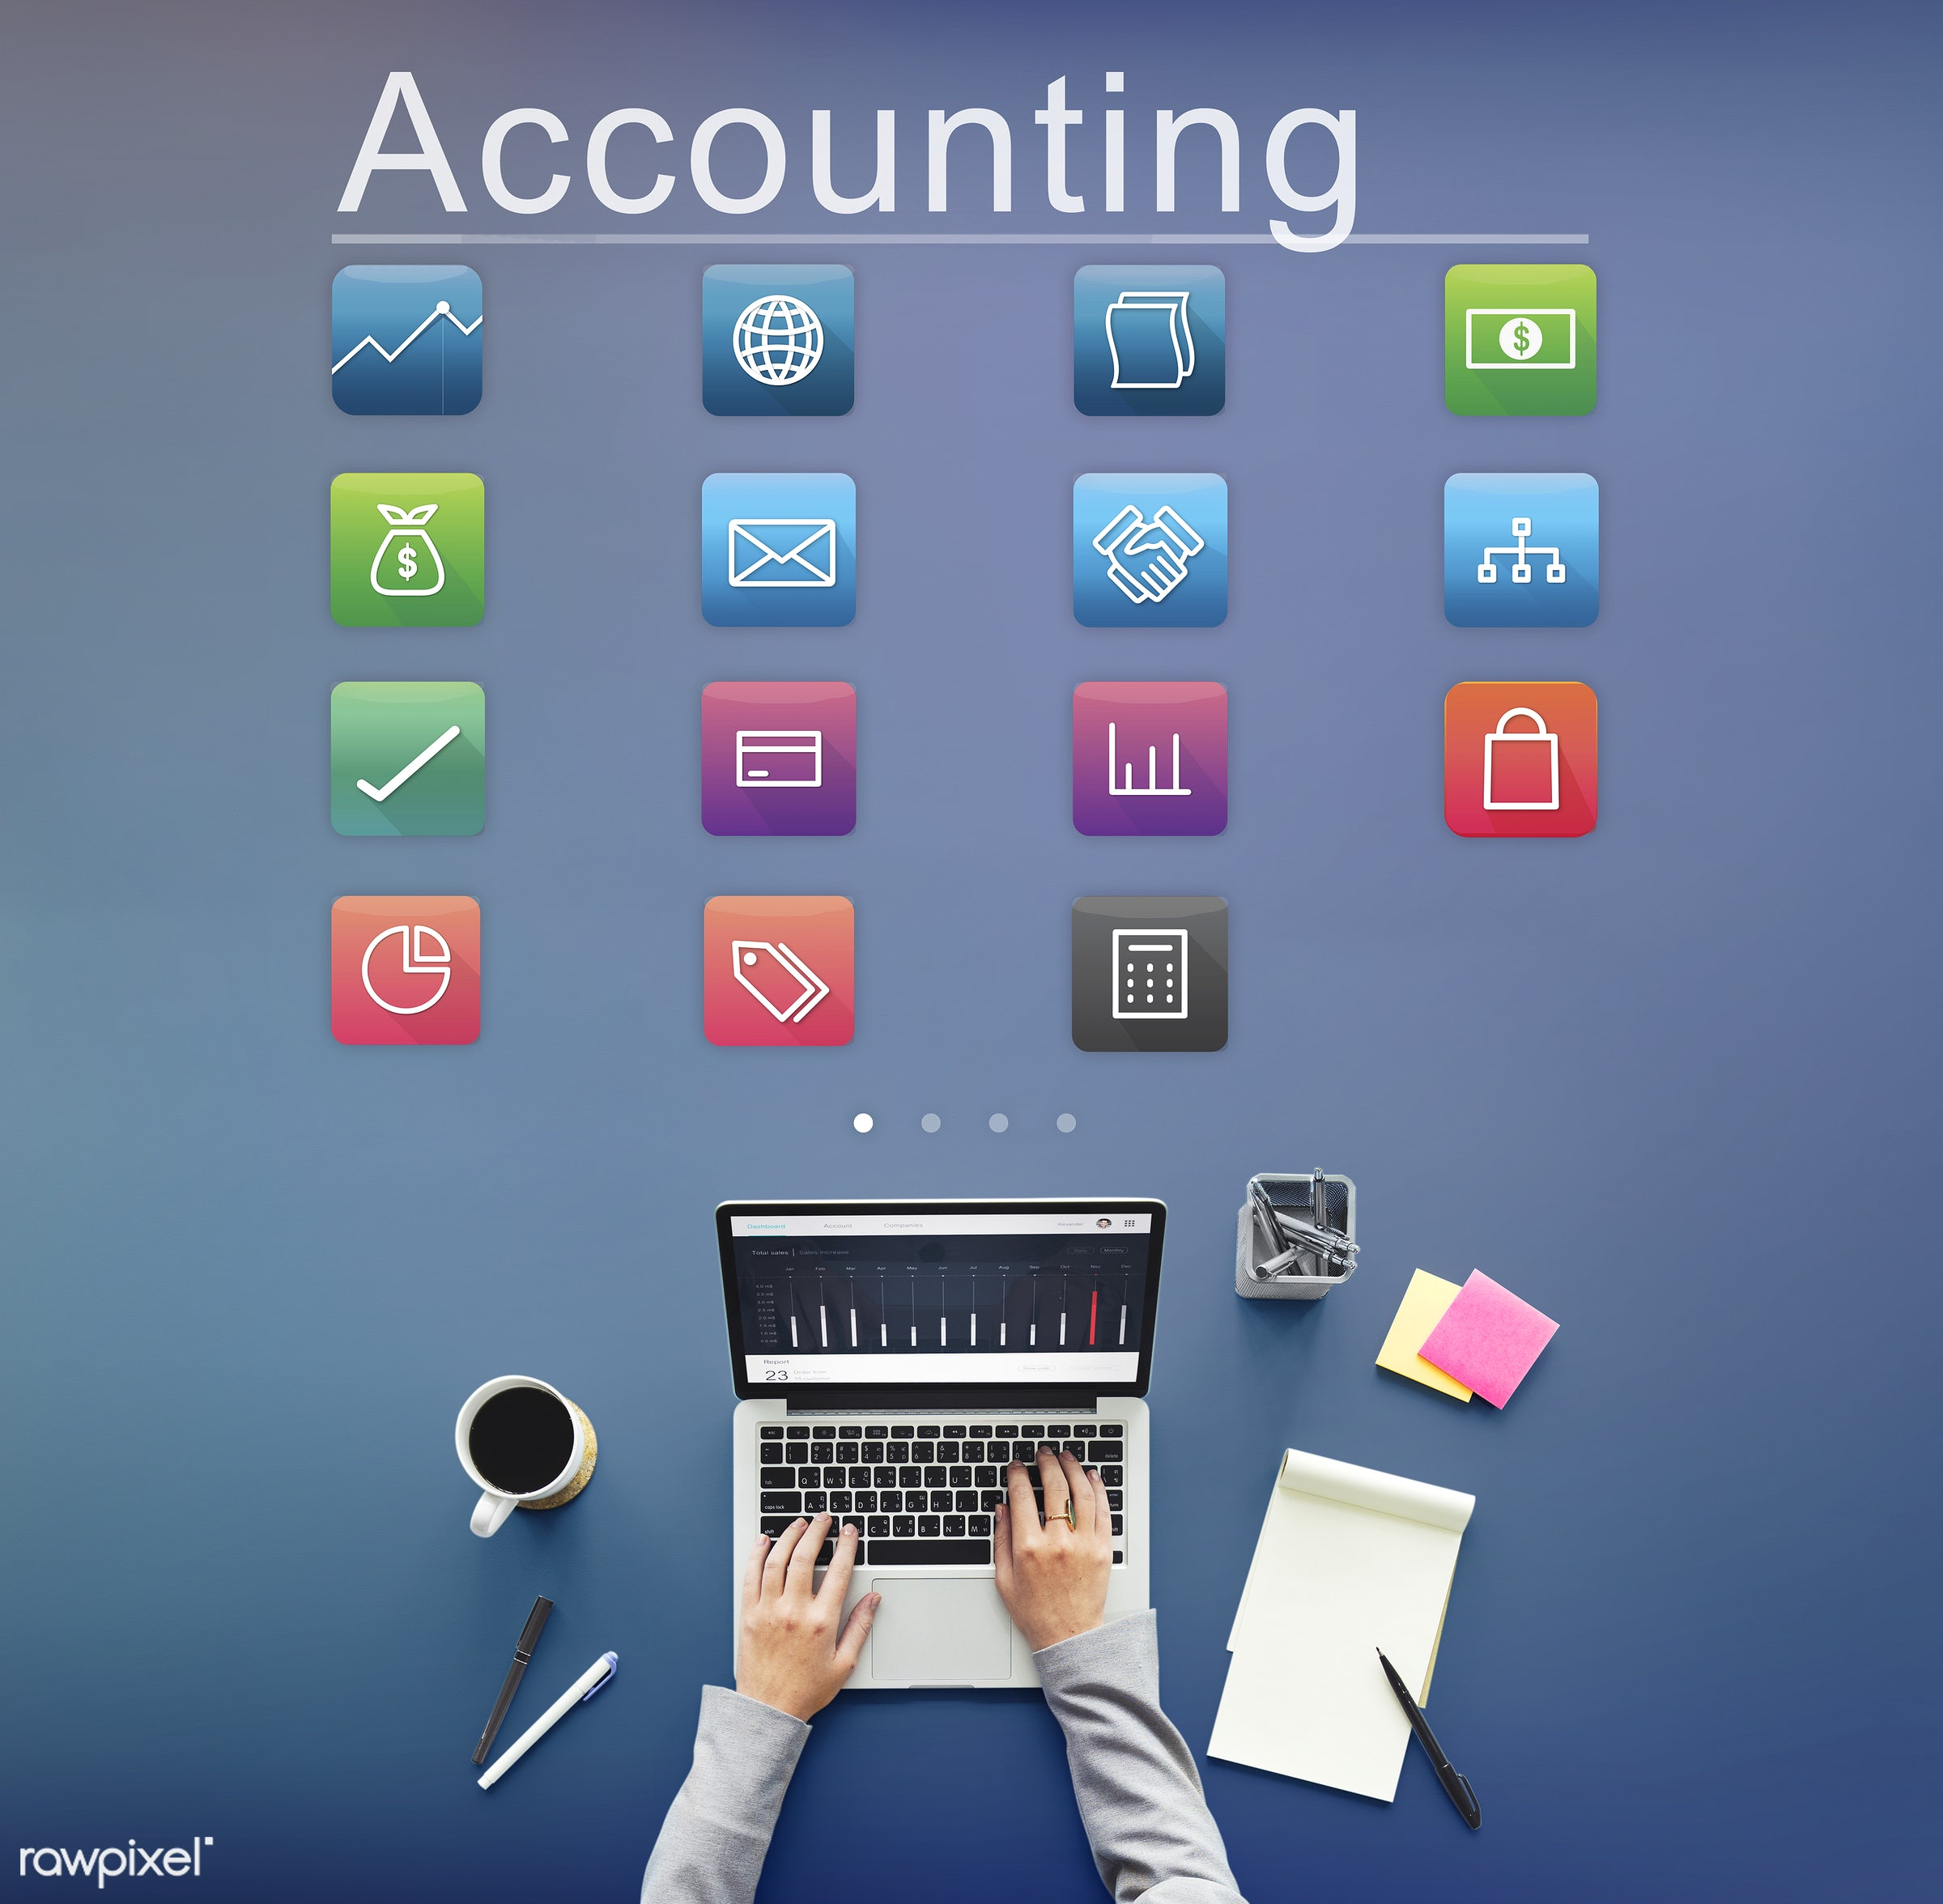 calculator, online payment, accounting, aerial view, application, assets, banking, business, business person, connection,...